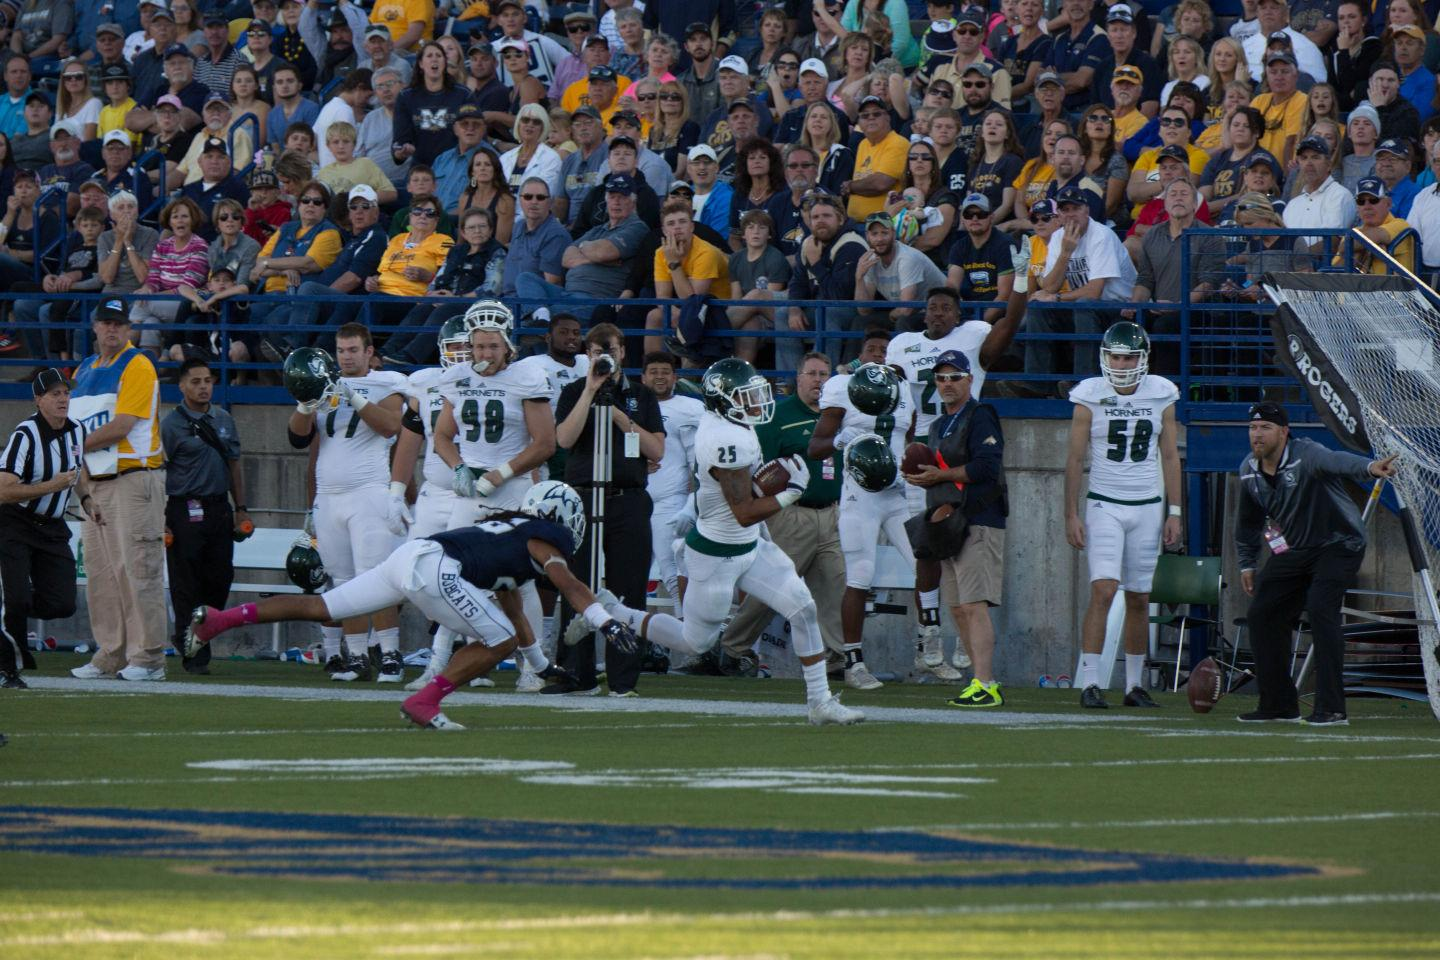 Hornets' running back Jordan Robinson runs the ball downfield against Montana State on Saturday, Oct. 10, 2015 at Bobcat Stadium. Robinson ran for 108 yards on 17 carries in the game.